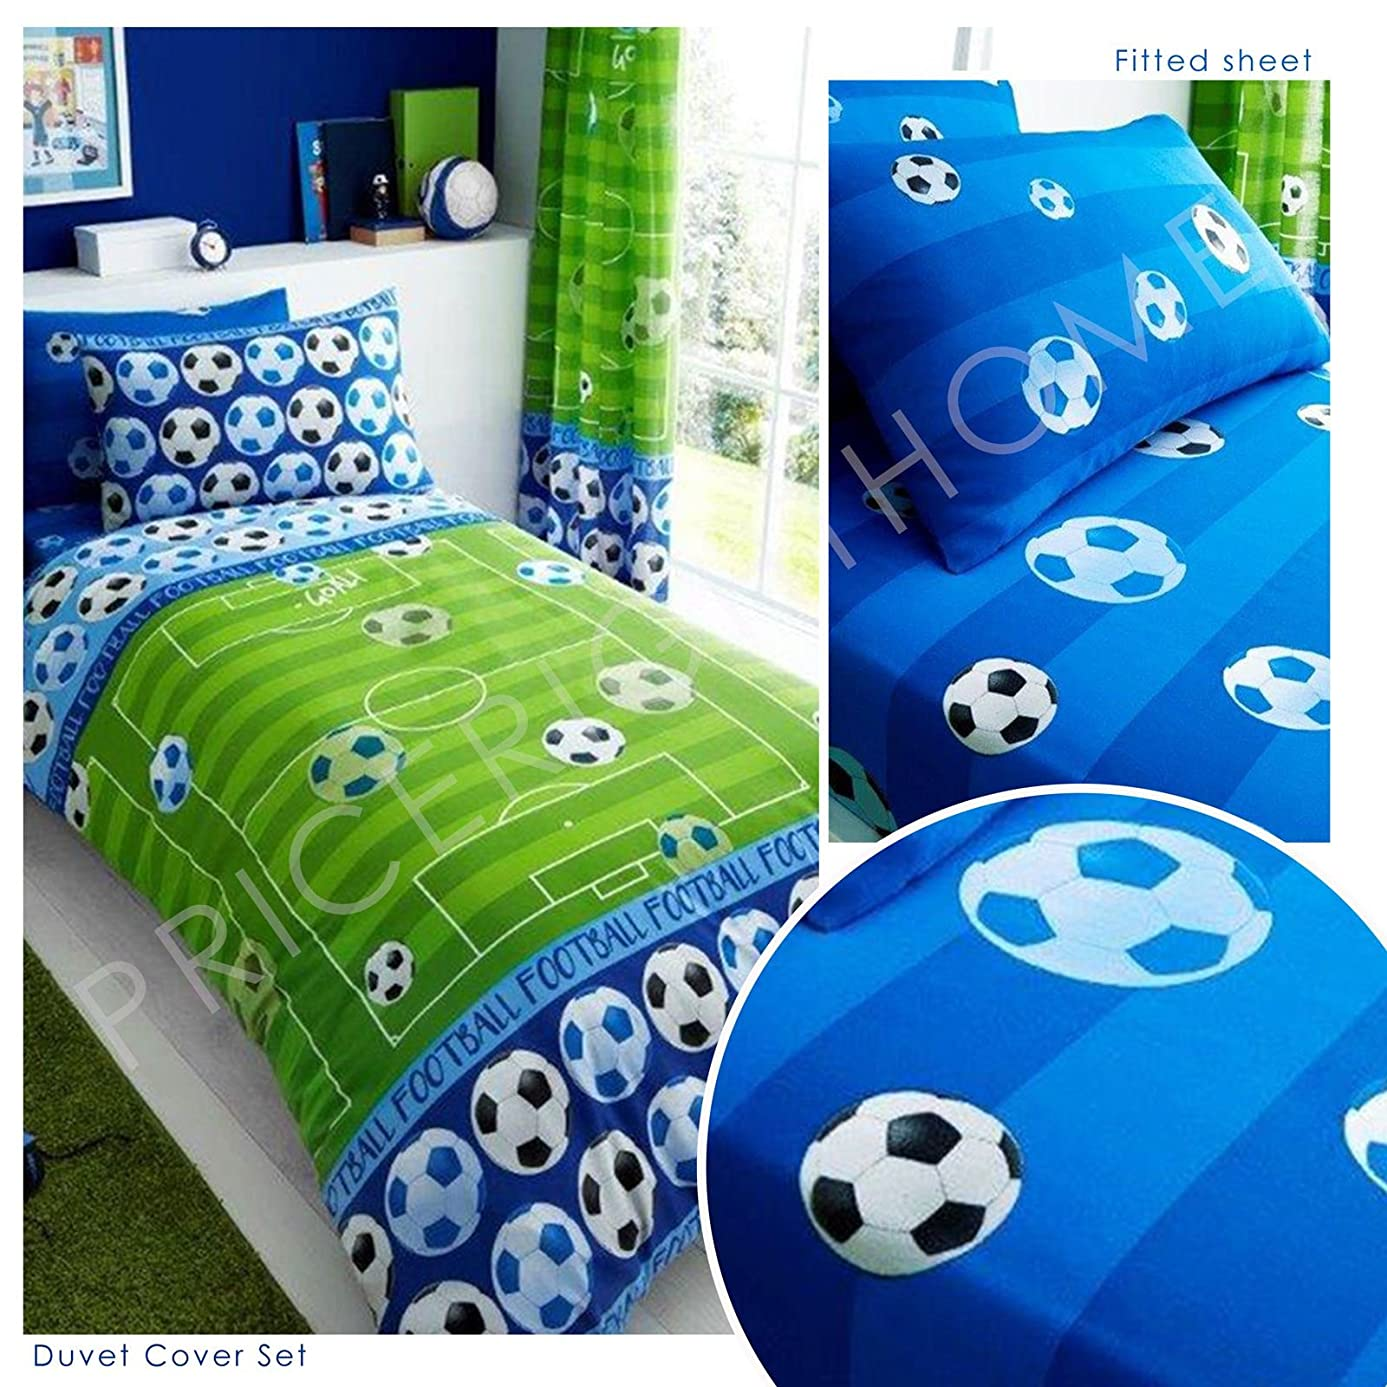 Goal Soccer Blue UK Single / US Twin Duvet Cover and Pillowcase Plus Matching Single Fitted Sheet